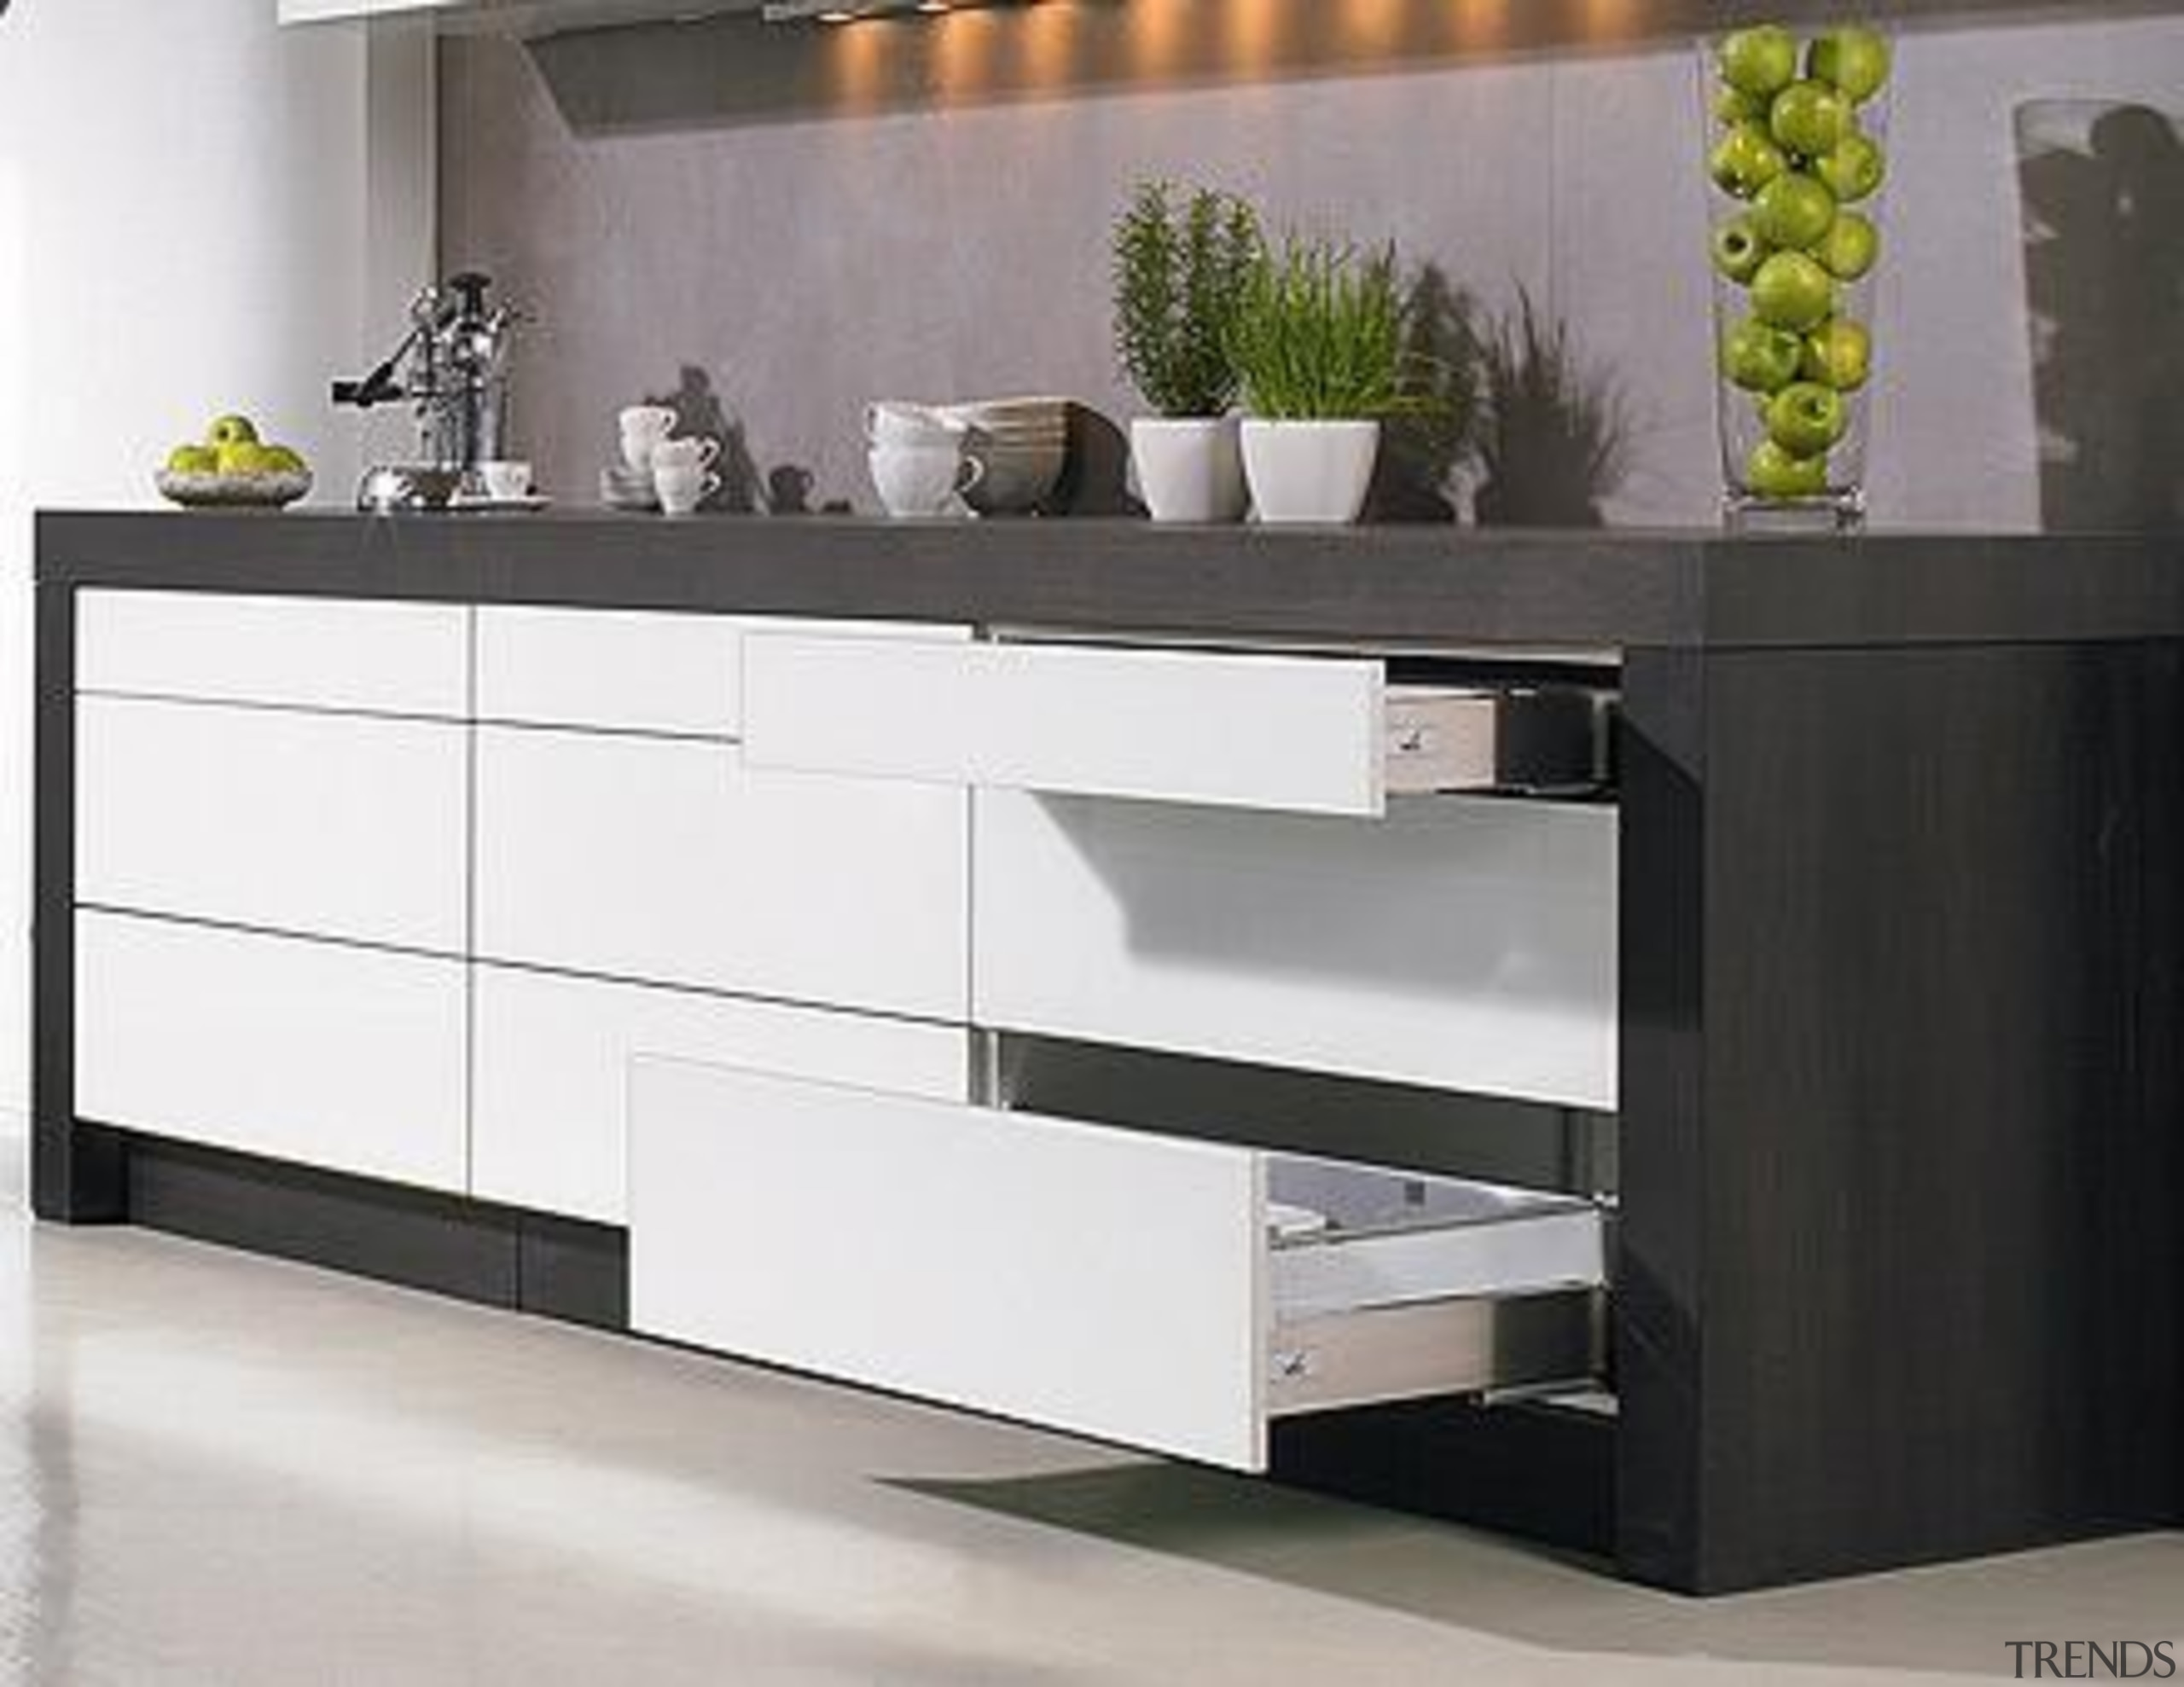 Easys is ideal for creating purist, handle-free design chest of drawers, drawer, furniture, kitchen, product, product design, sideboard, white, black